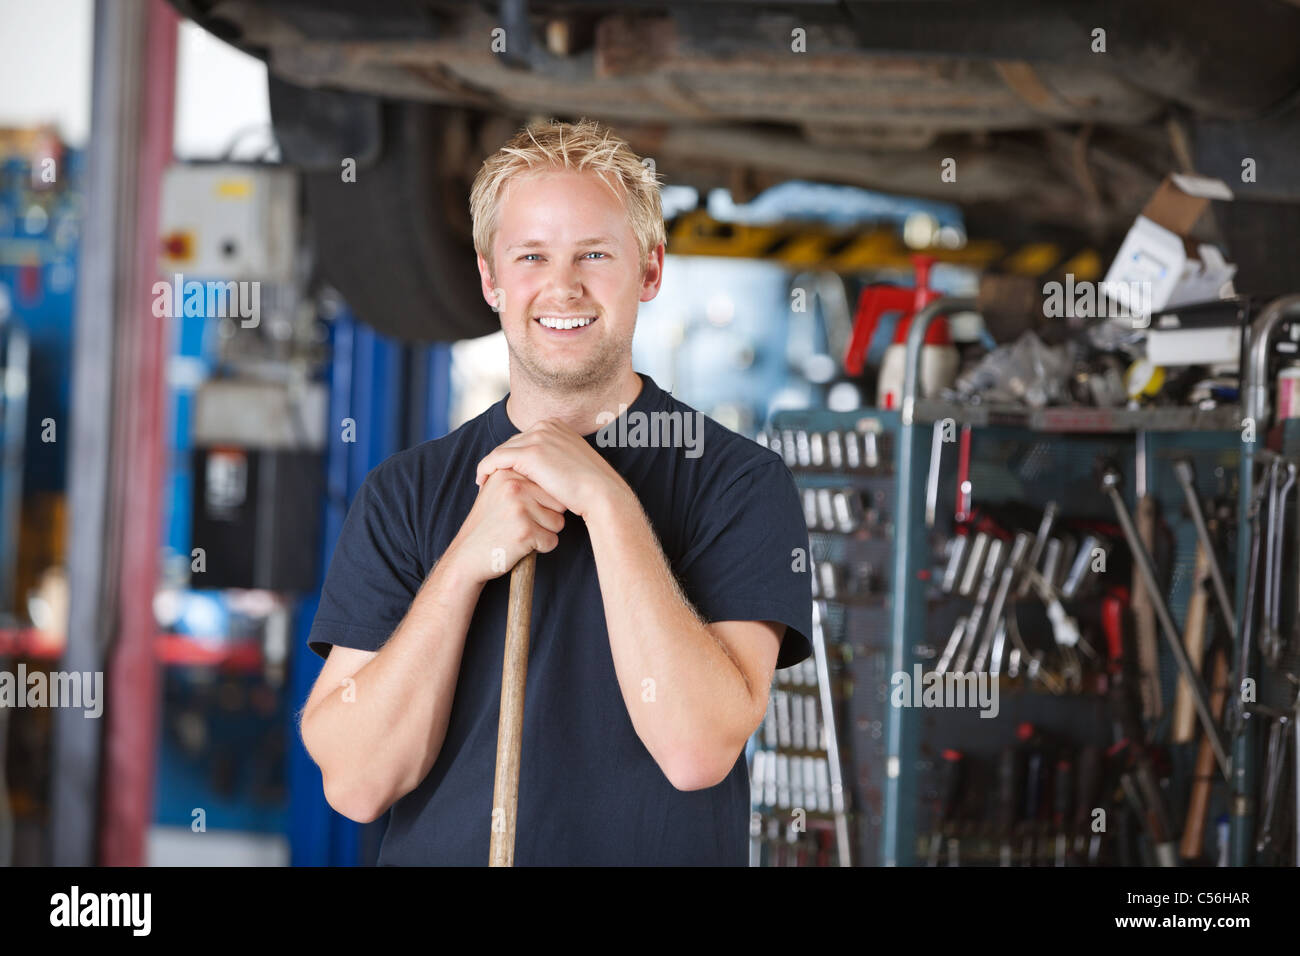 Portrait of smiling young mechanic leaning on a broom in a garage - Stock Image